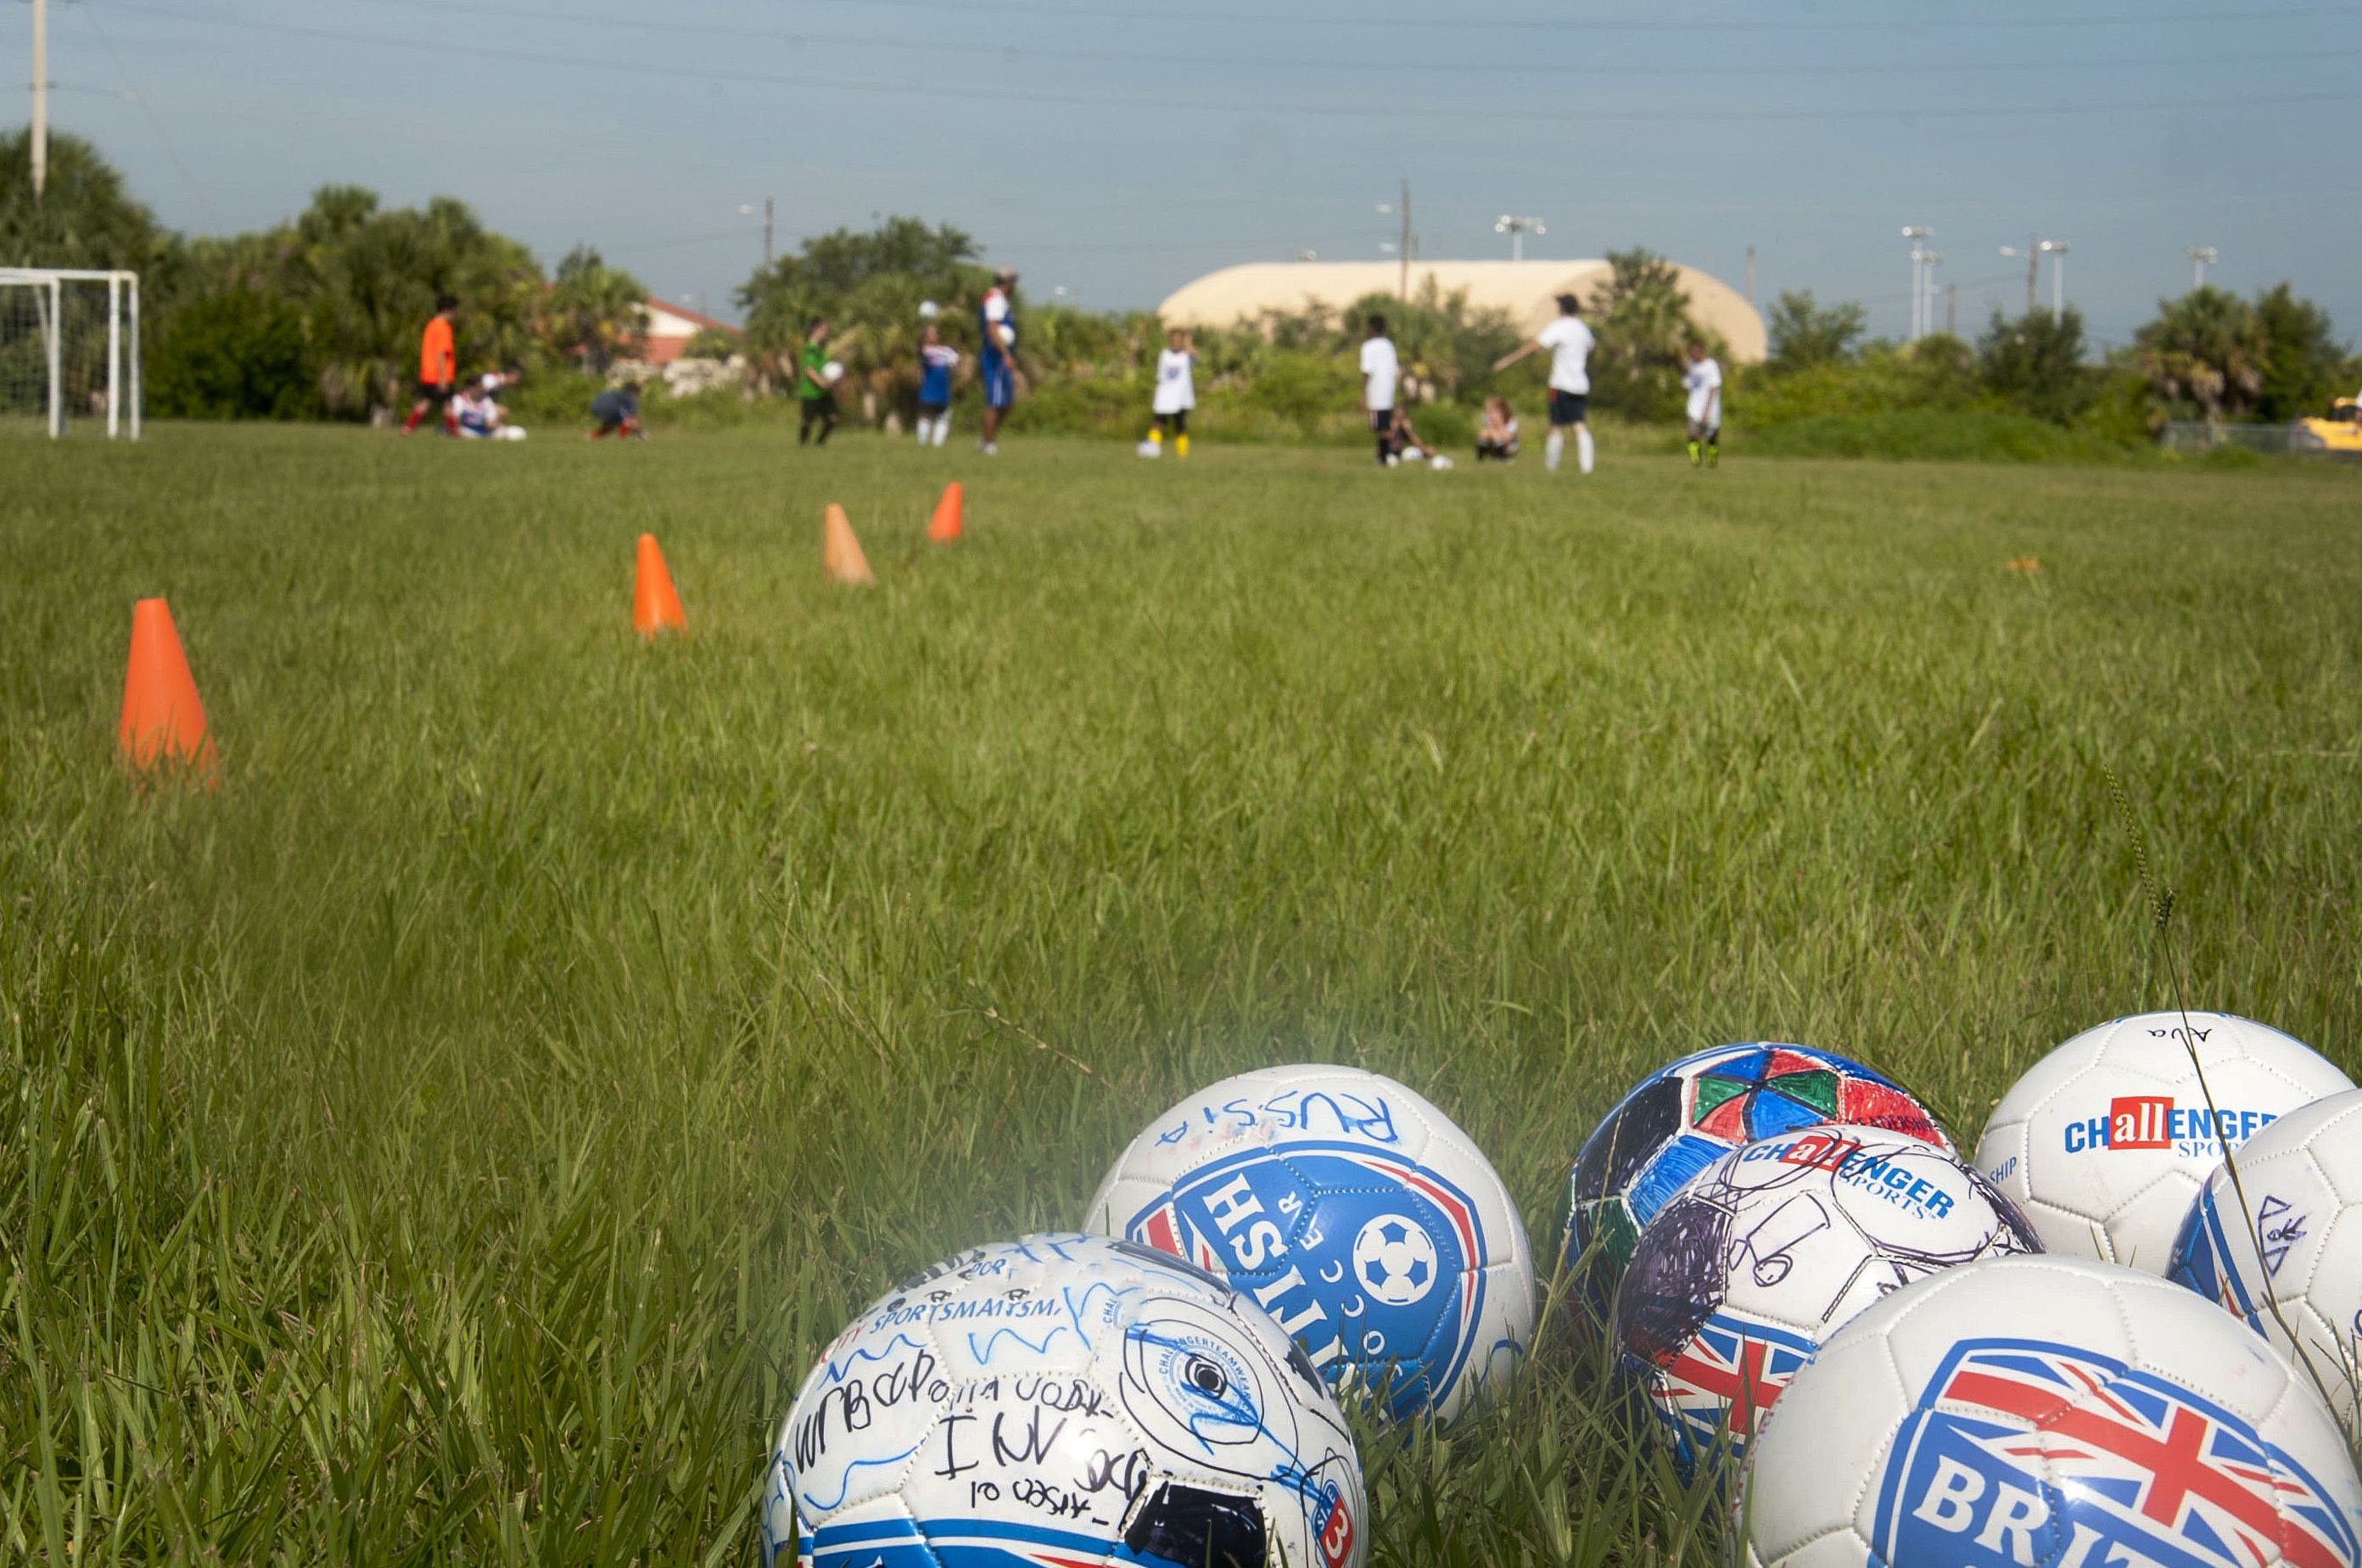 Access and Affordable Youth Sports